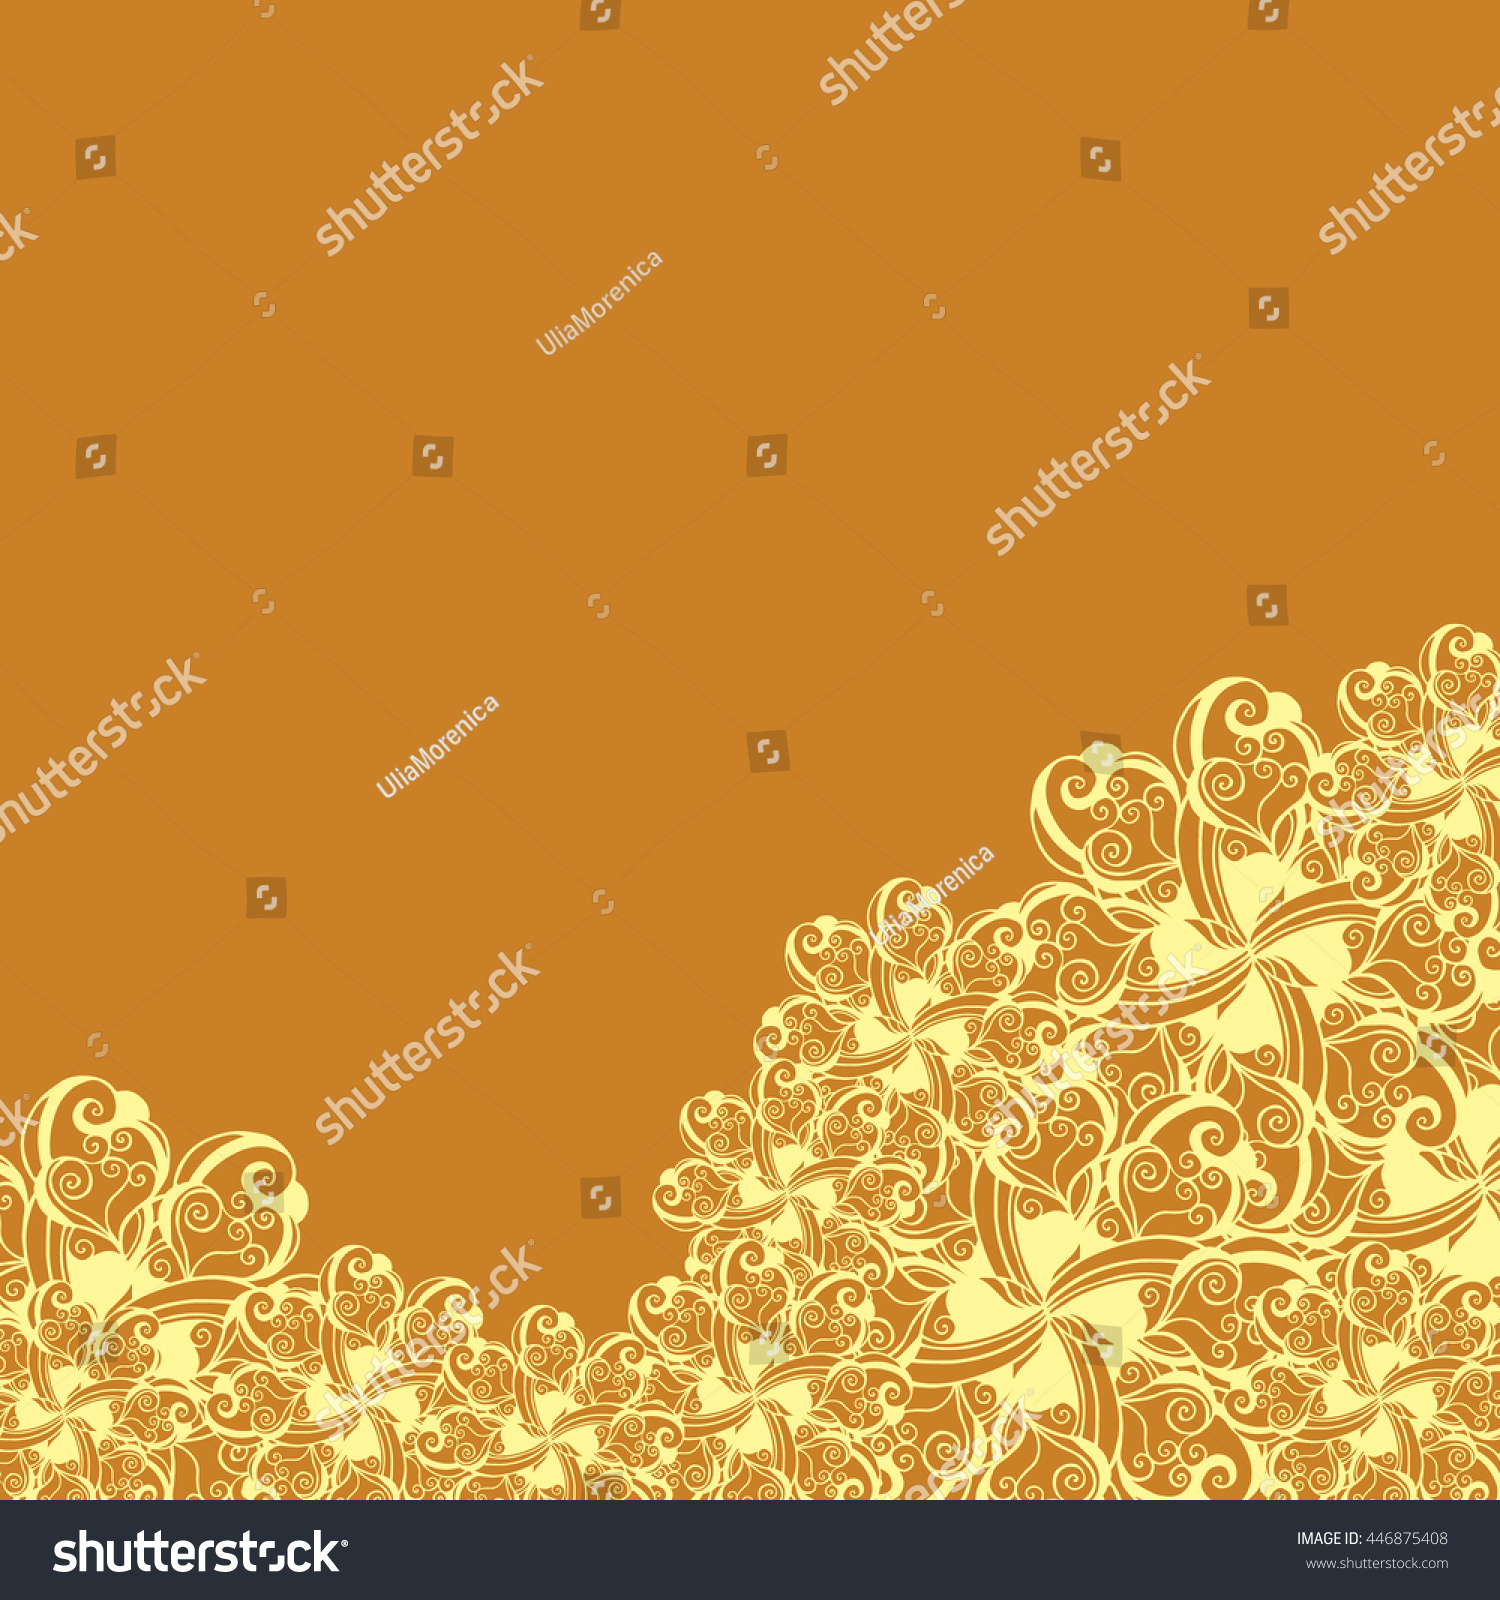 Abstract Handdrawn Creative Background Stylized Flowers Stock Vector